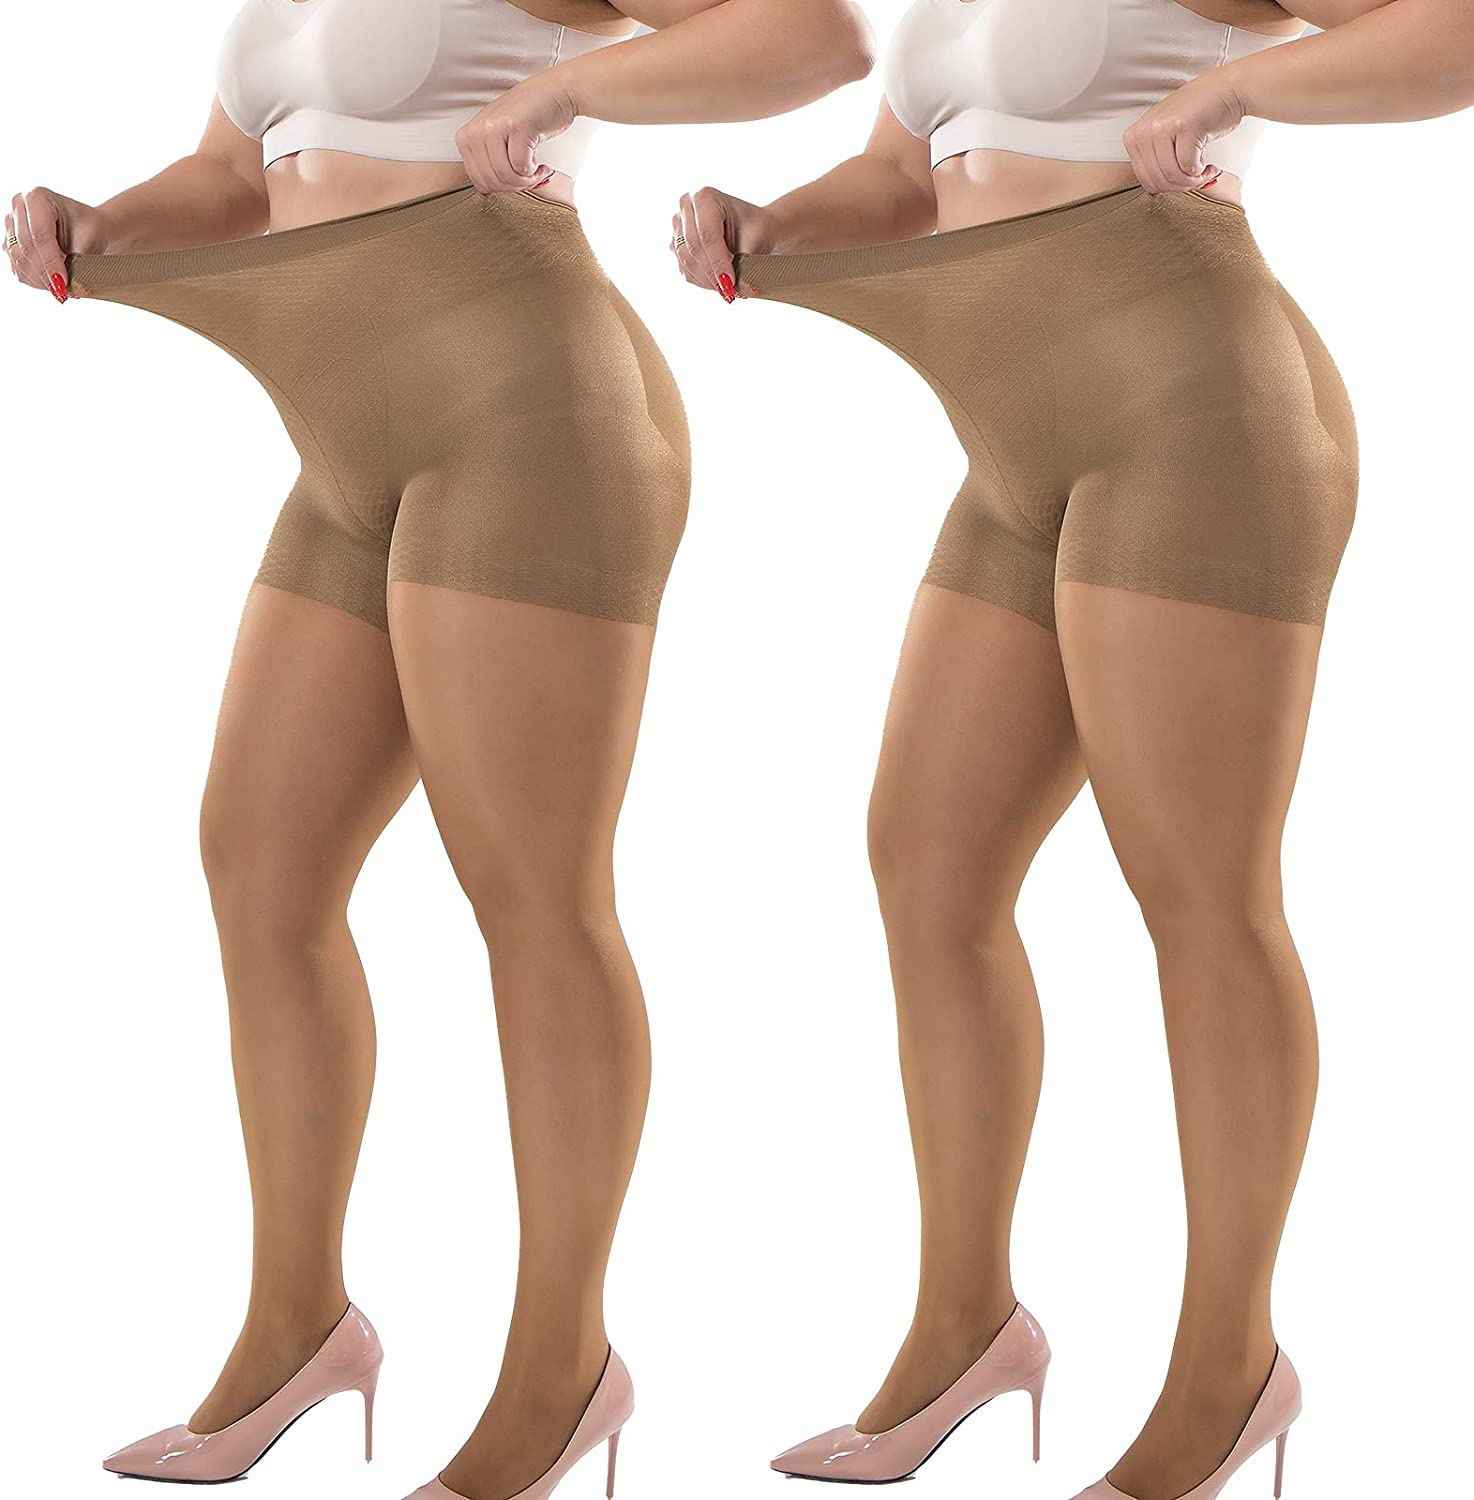 Plus Size Tights 2 PAIRS 40D Pantyhose For Lady Super Elastic